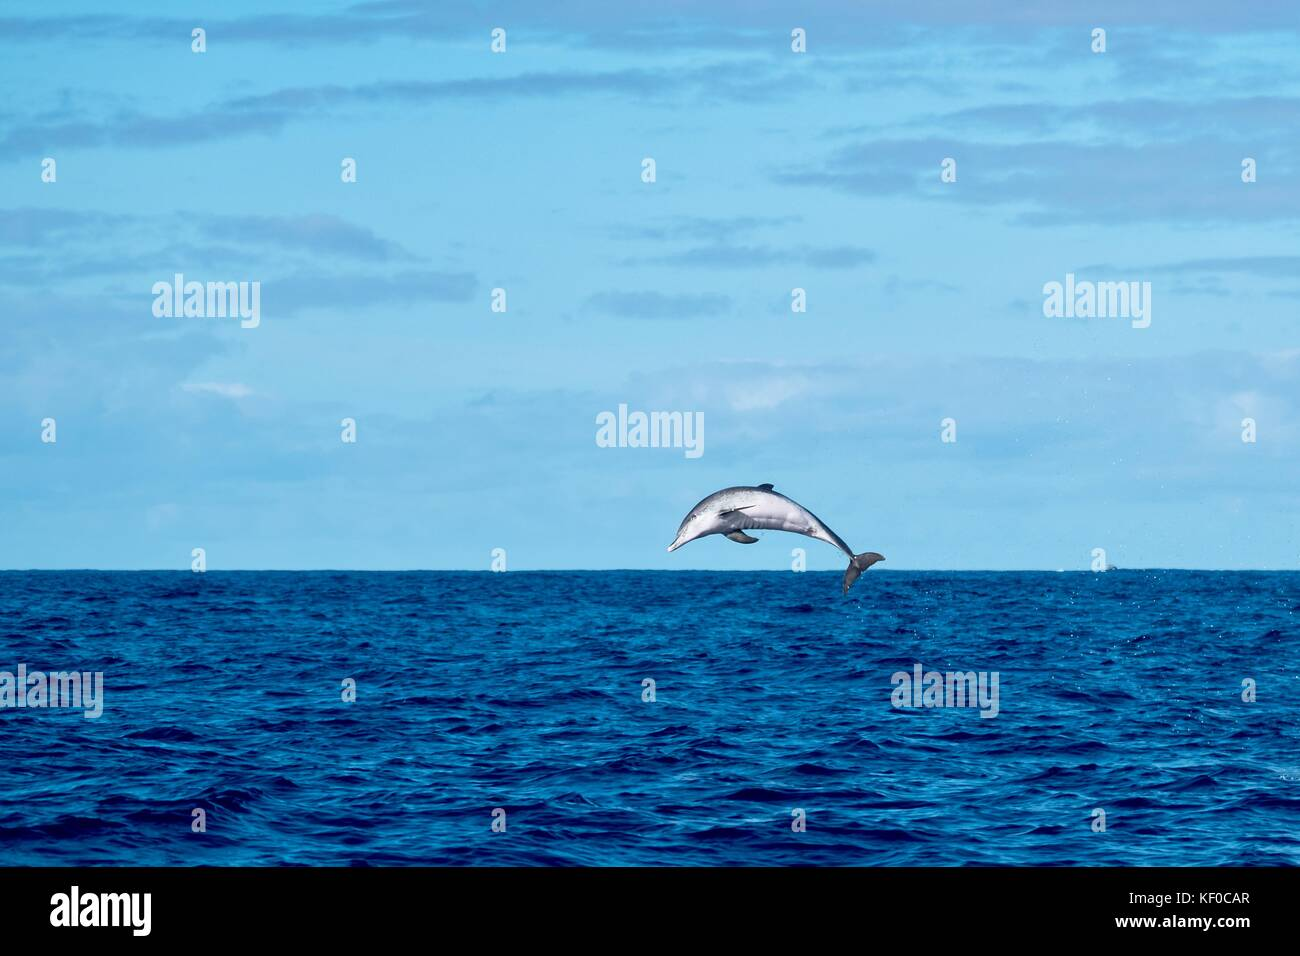 An Atlantic spotted dolphin leaping from the ocean near to Pico Island. - Stock Image